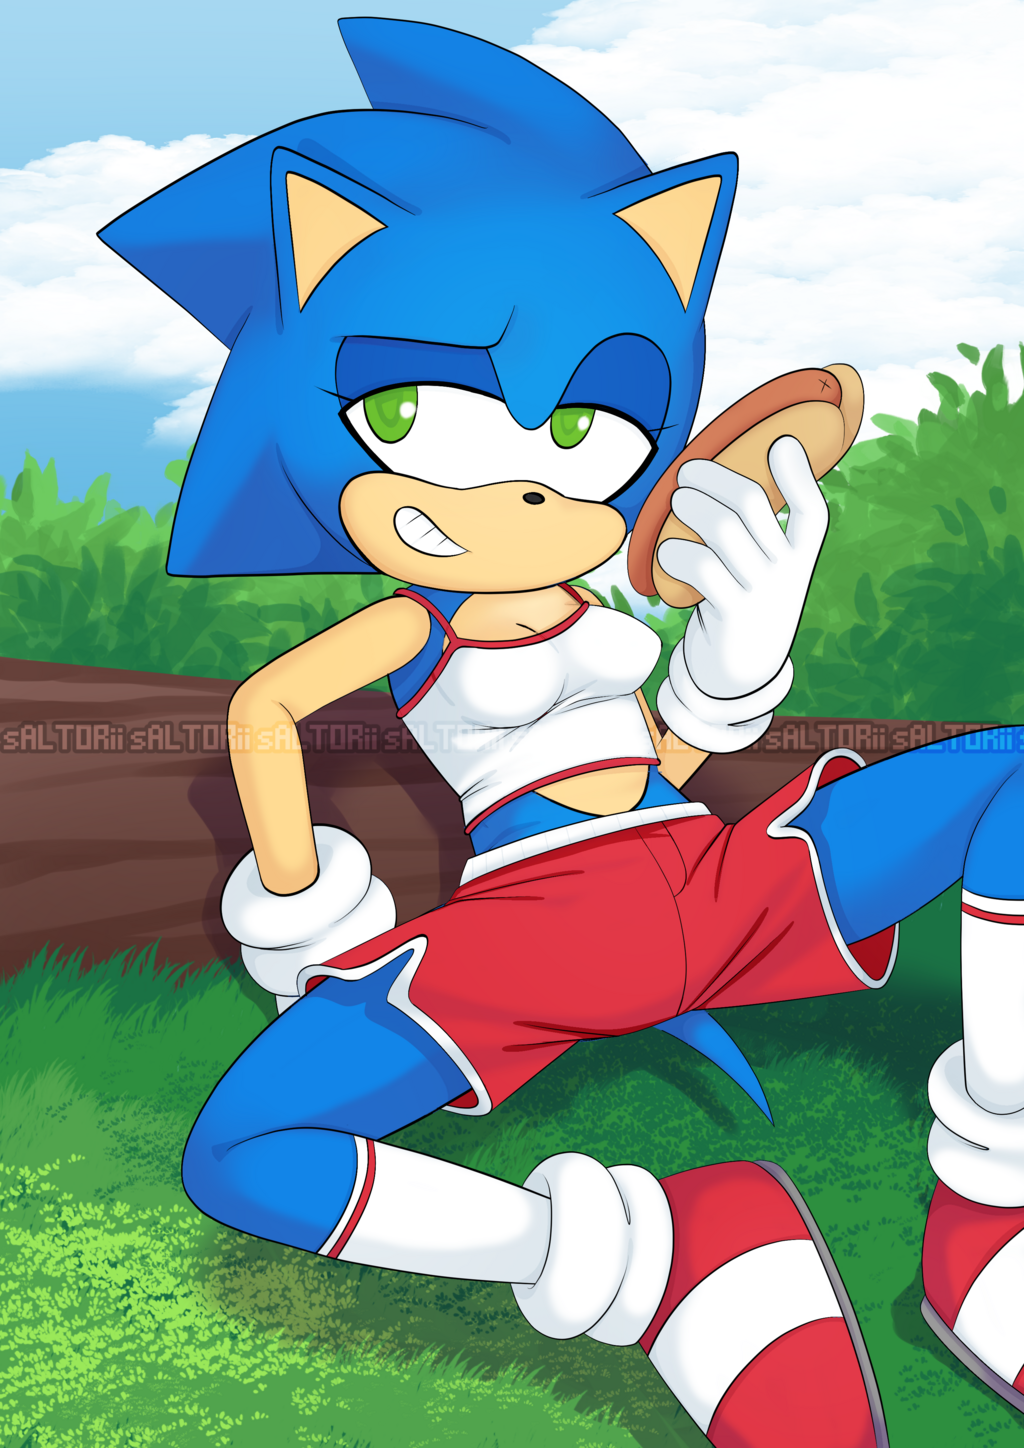 Featured image: Female Sonic